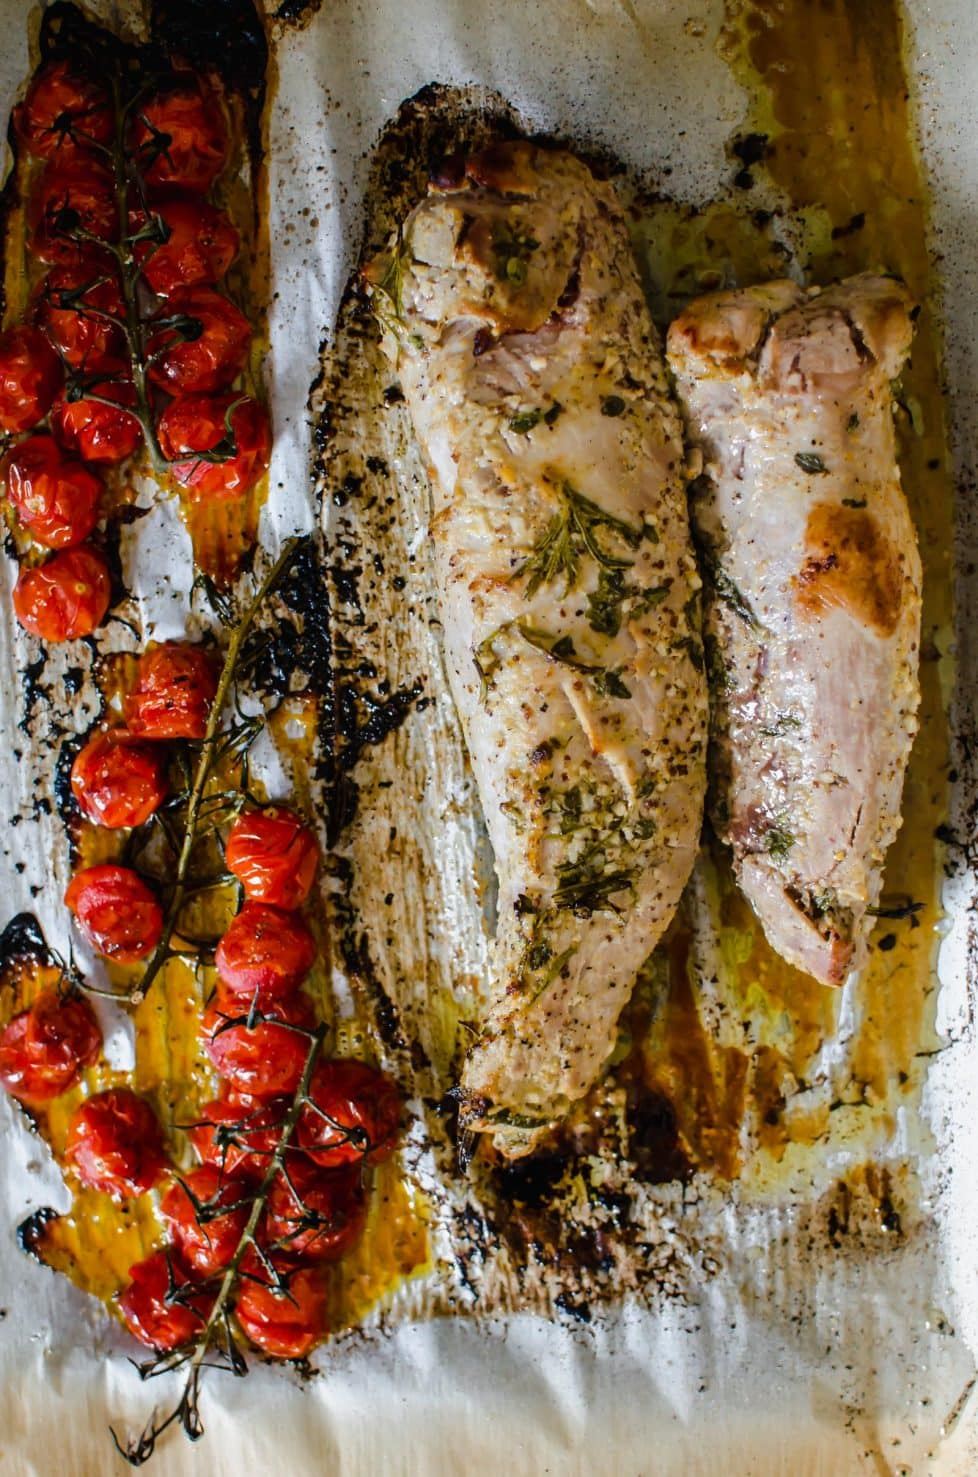 A sheet pan with pork and blistered tomatoes.